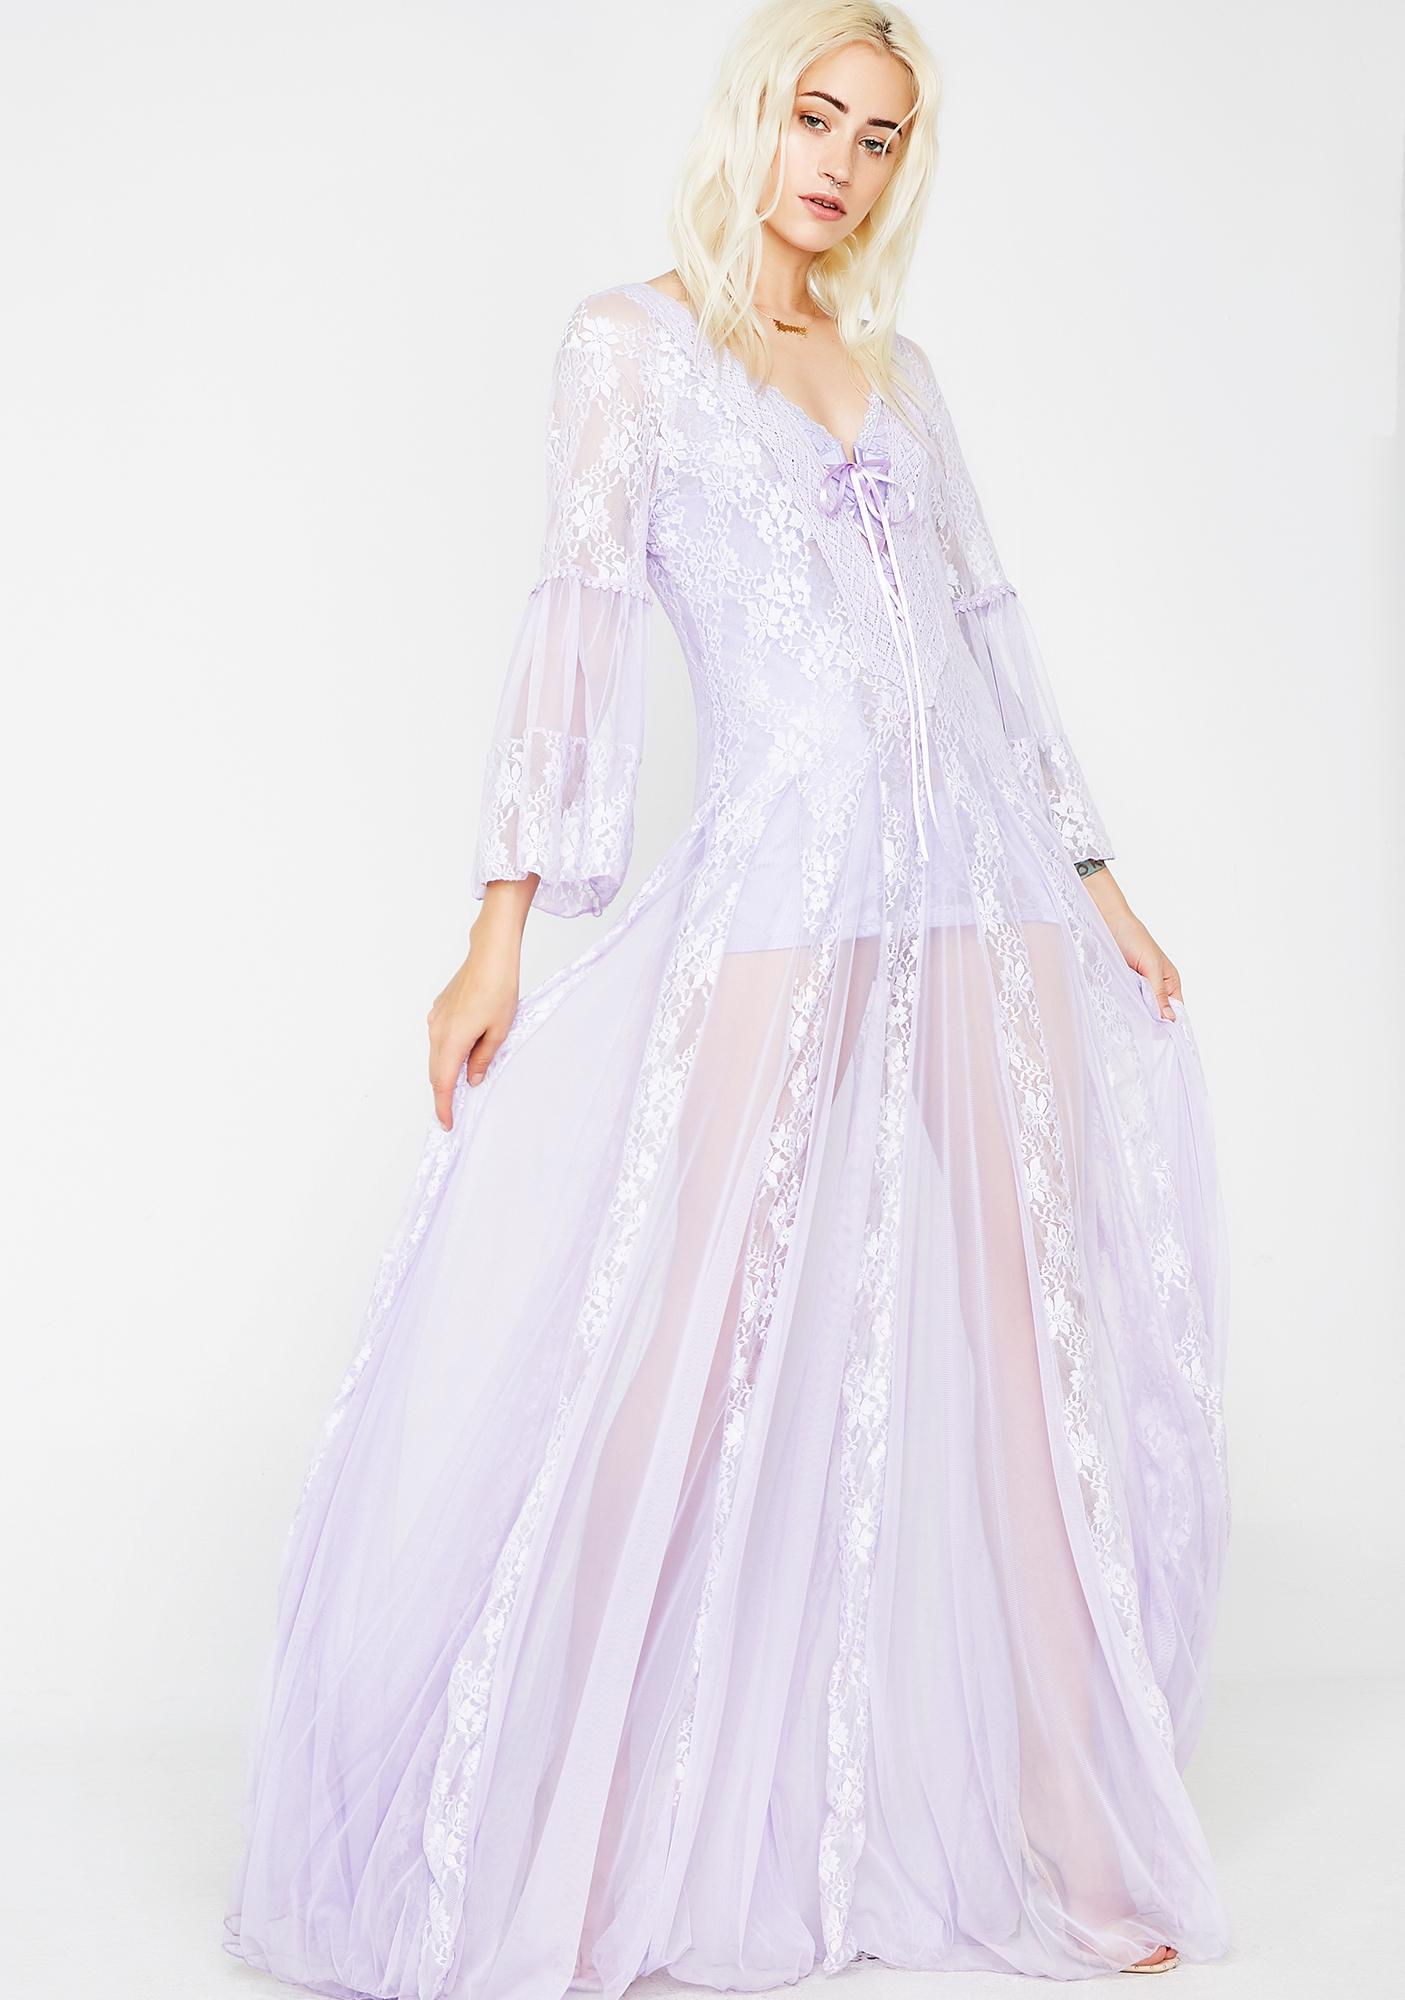 Kiki Riki Fairy Transcendent Lace Dress